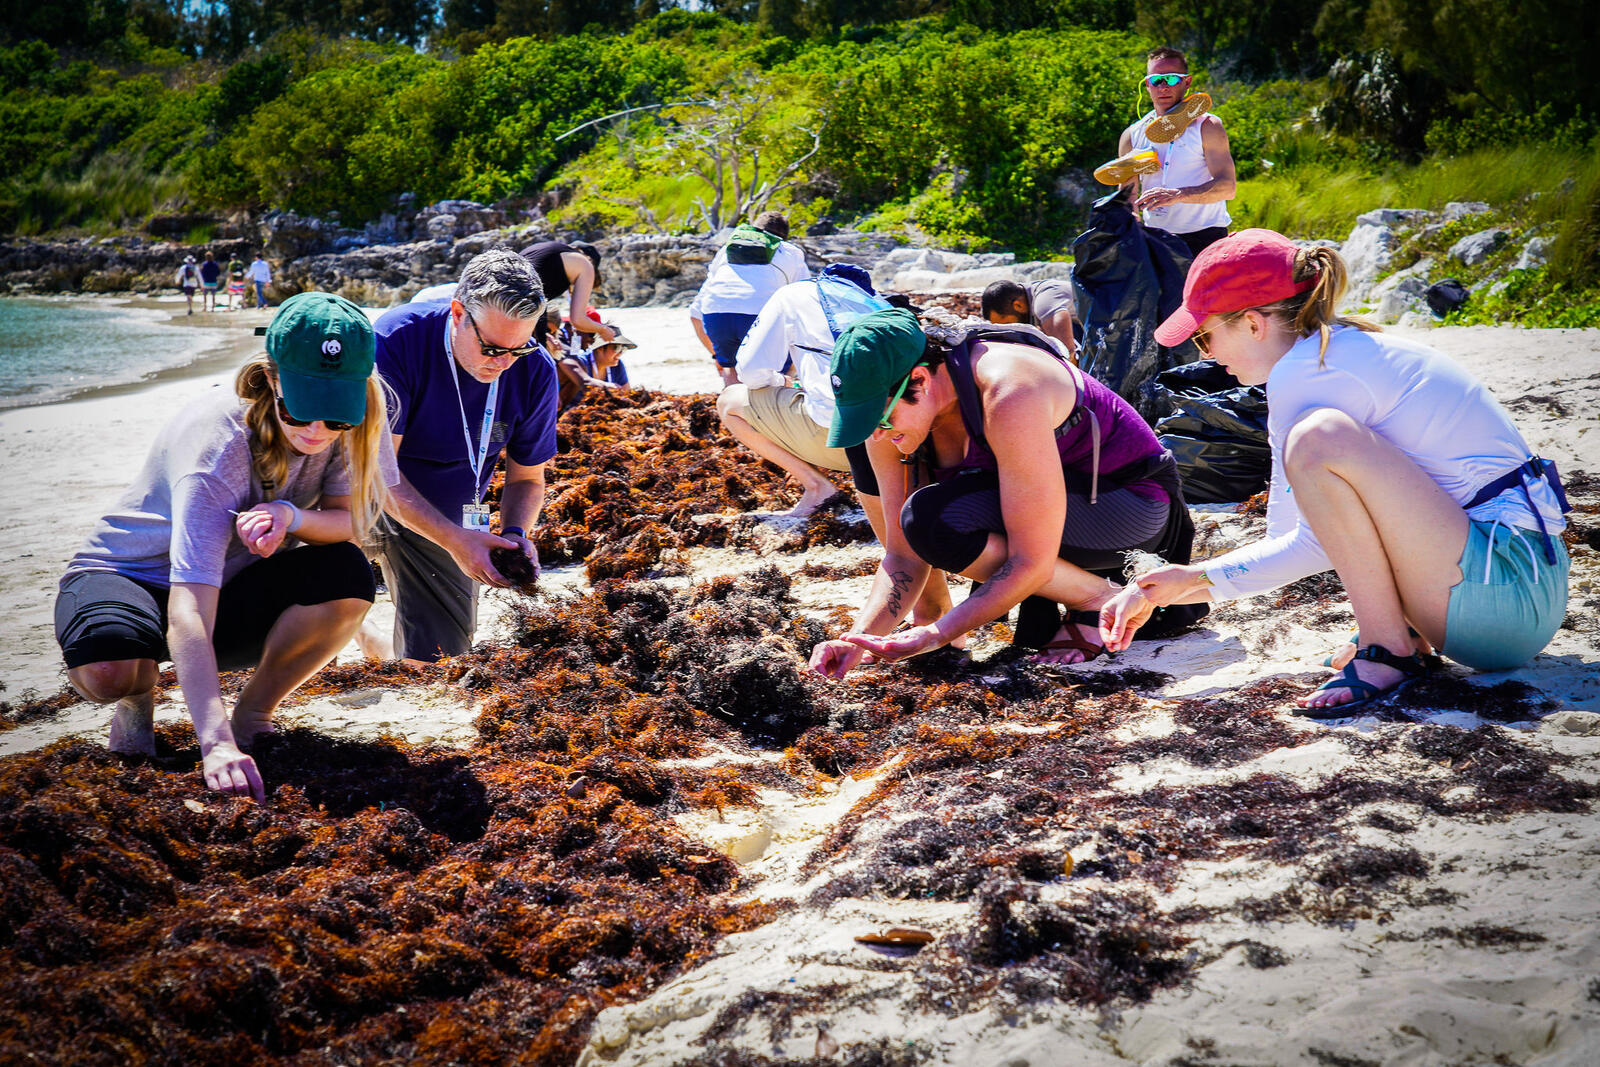 Women and a man search through seaweed for microplastics on a beach on a sunny day